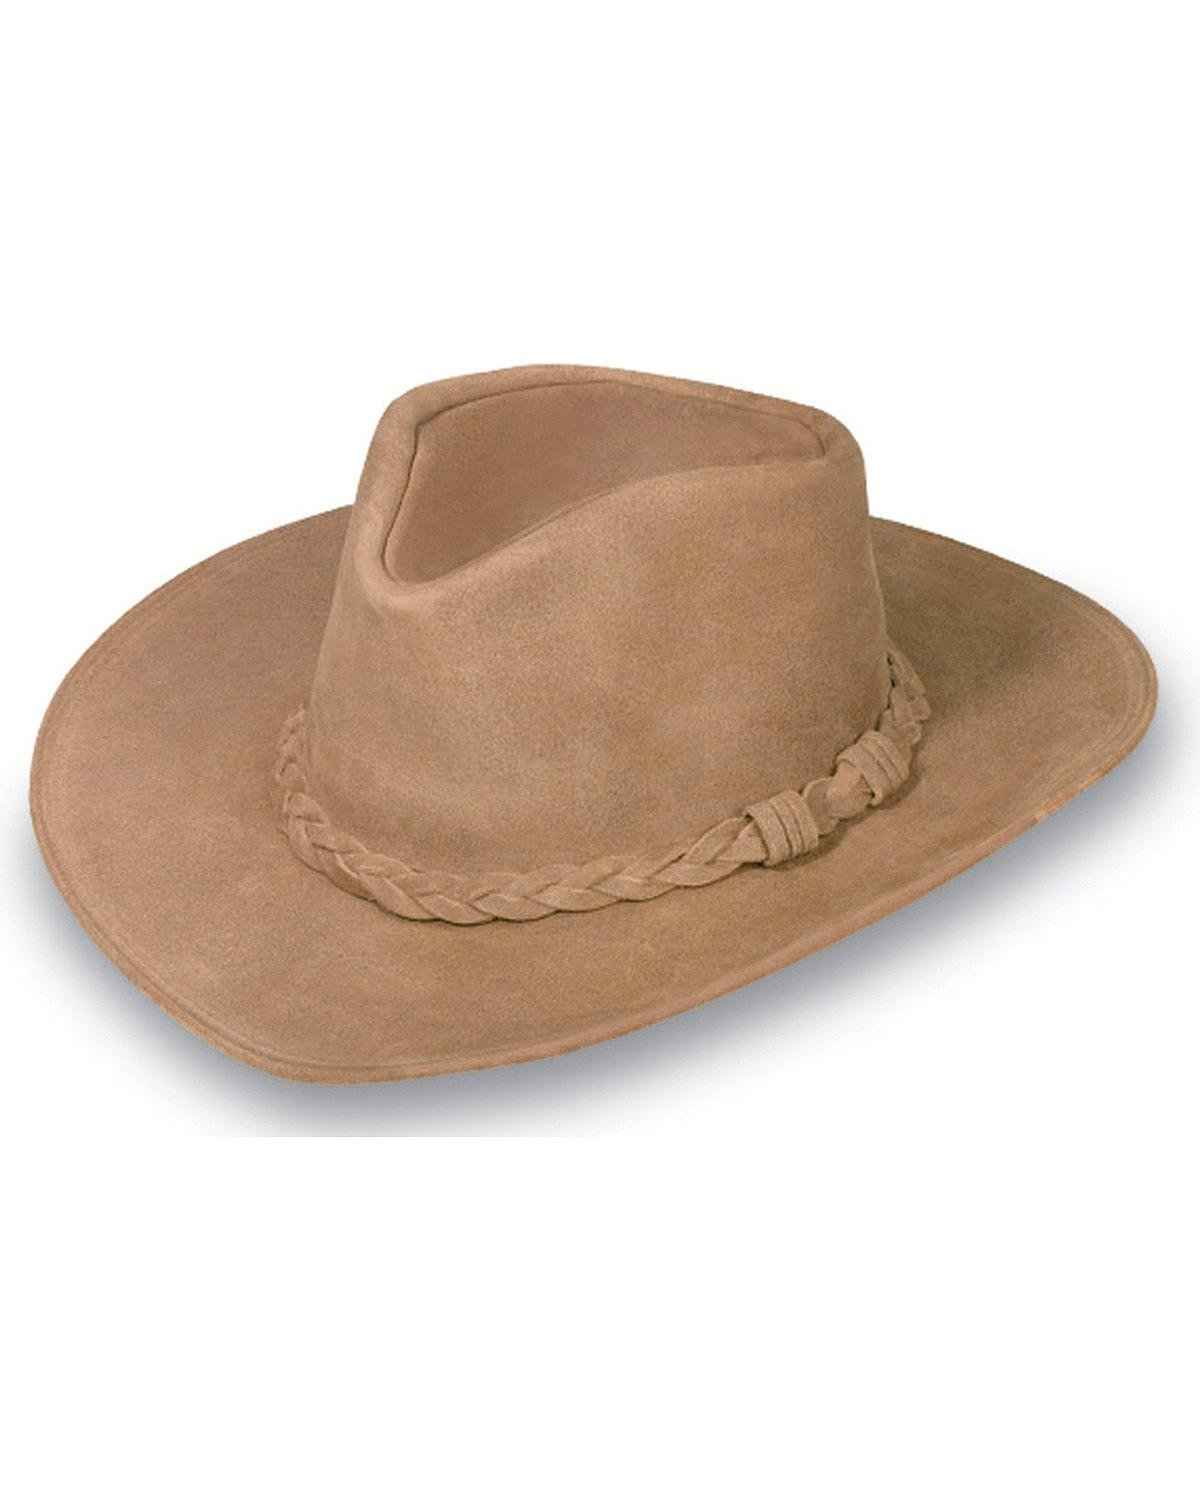 7fbdd88ae403f Best Rated in Women s Cowboy Hats   Helpful Customer Reviews ...